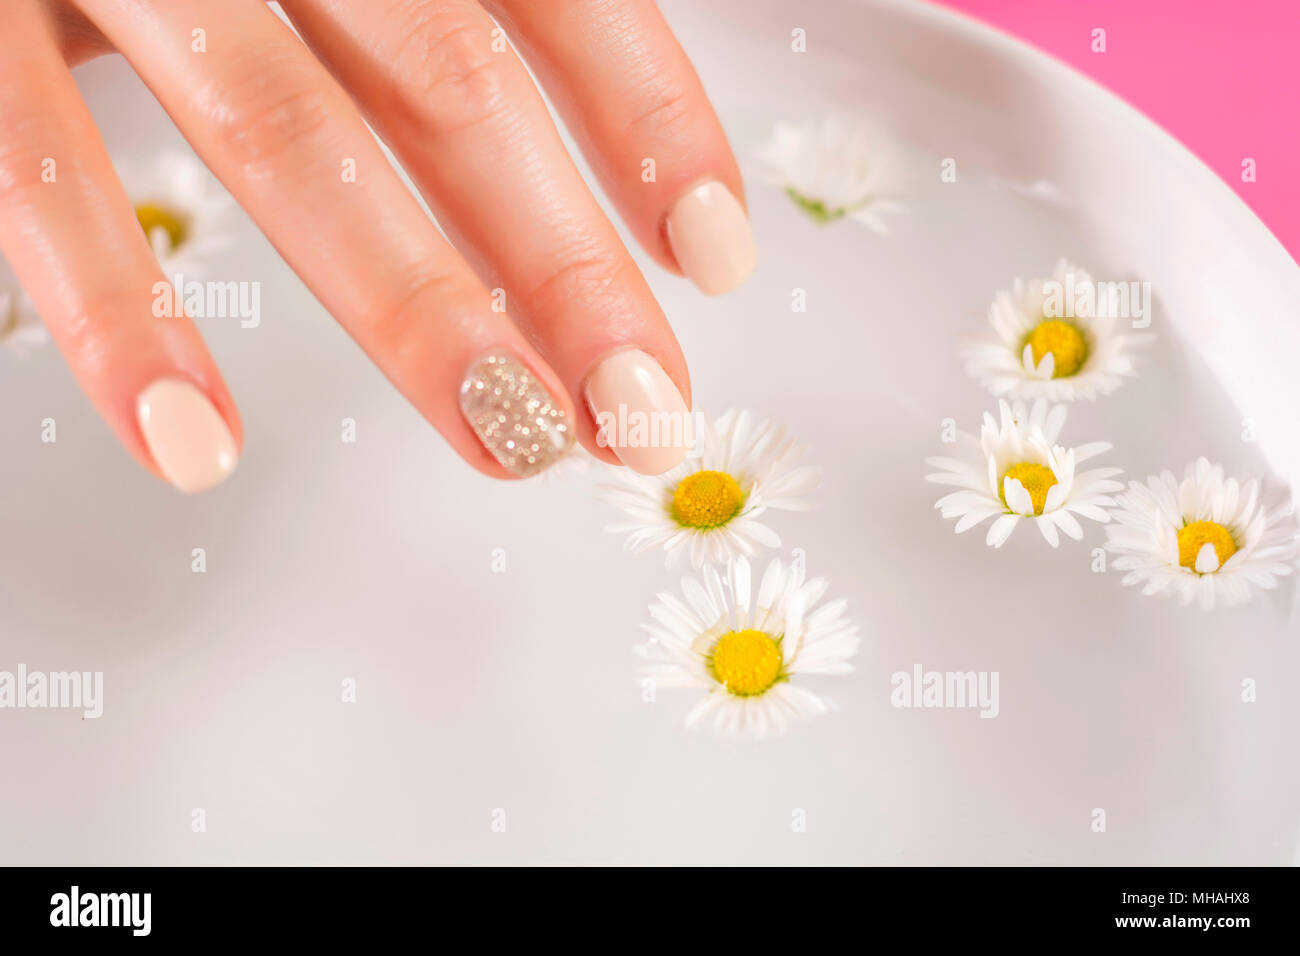 Beauty nail polish water close up stock photos beauty nail polish young woman finger with cream nails polish touch daisy flower in bowl with water manicure izmirmasajfo